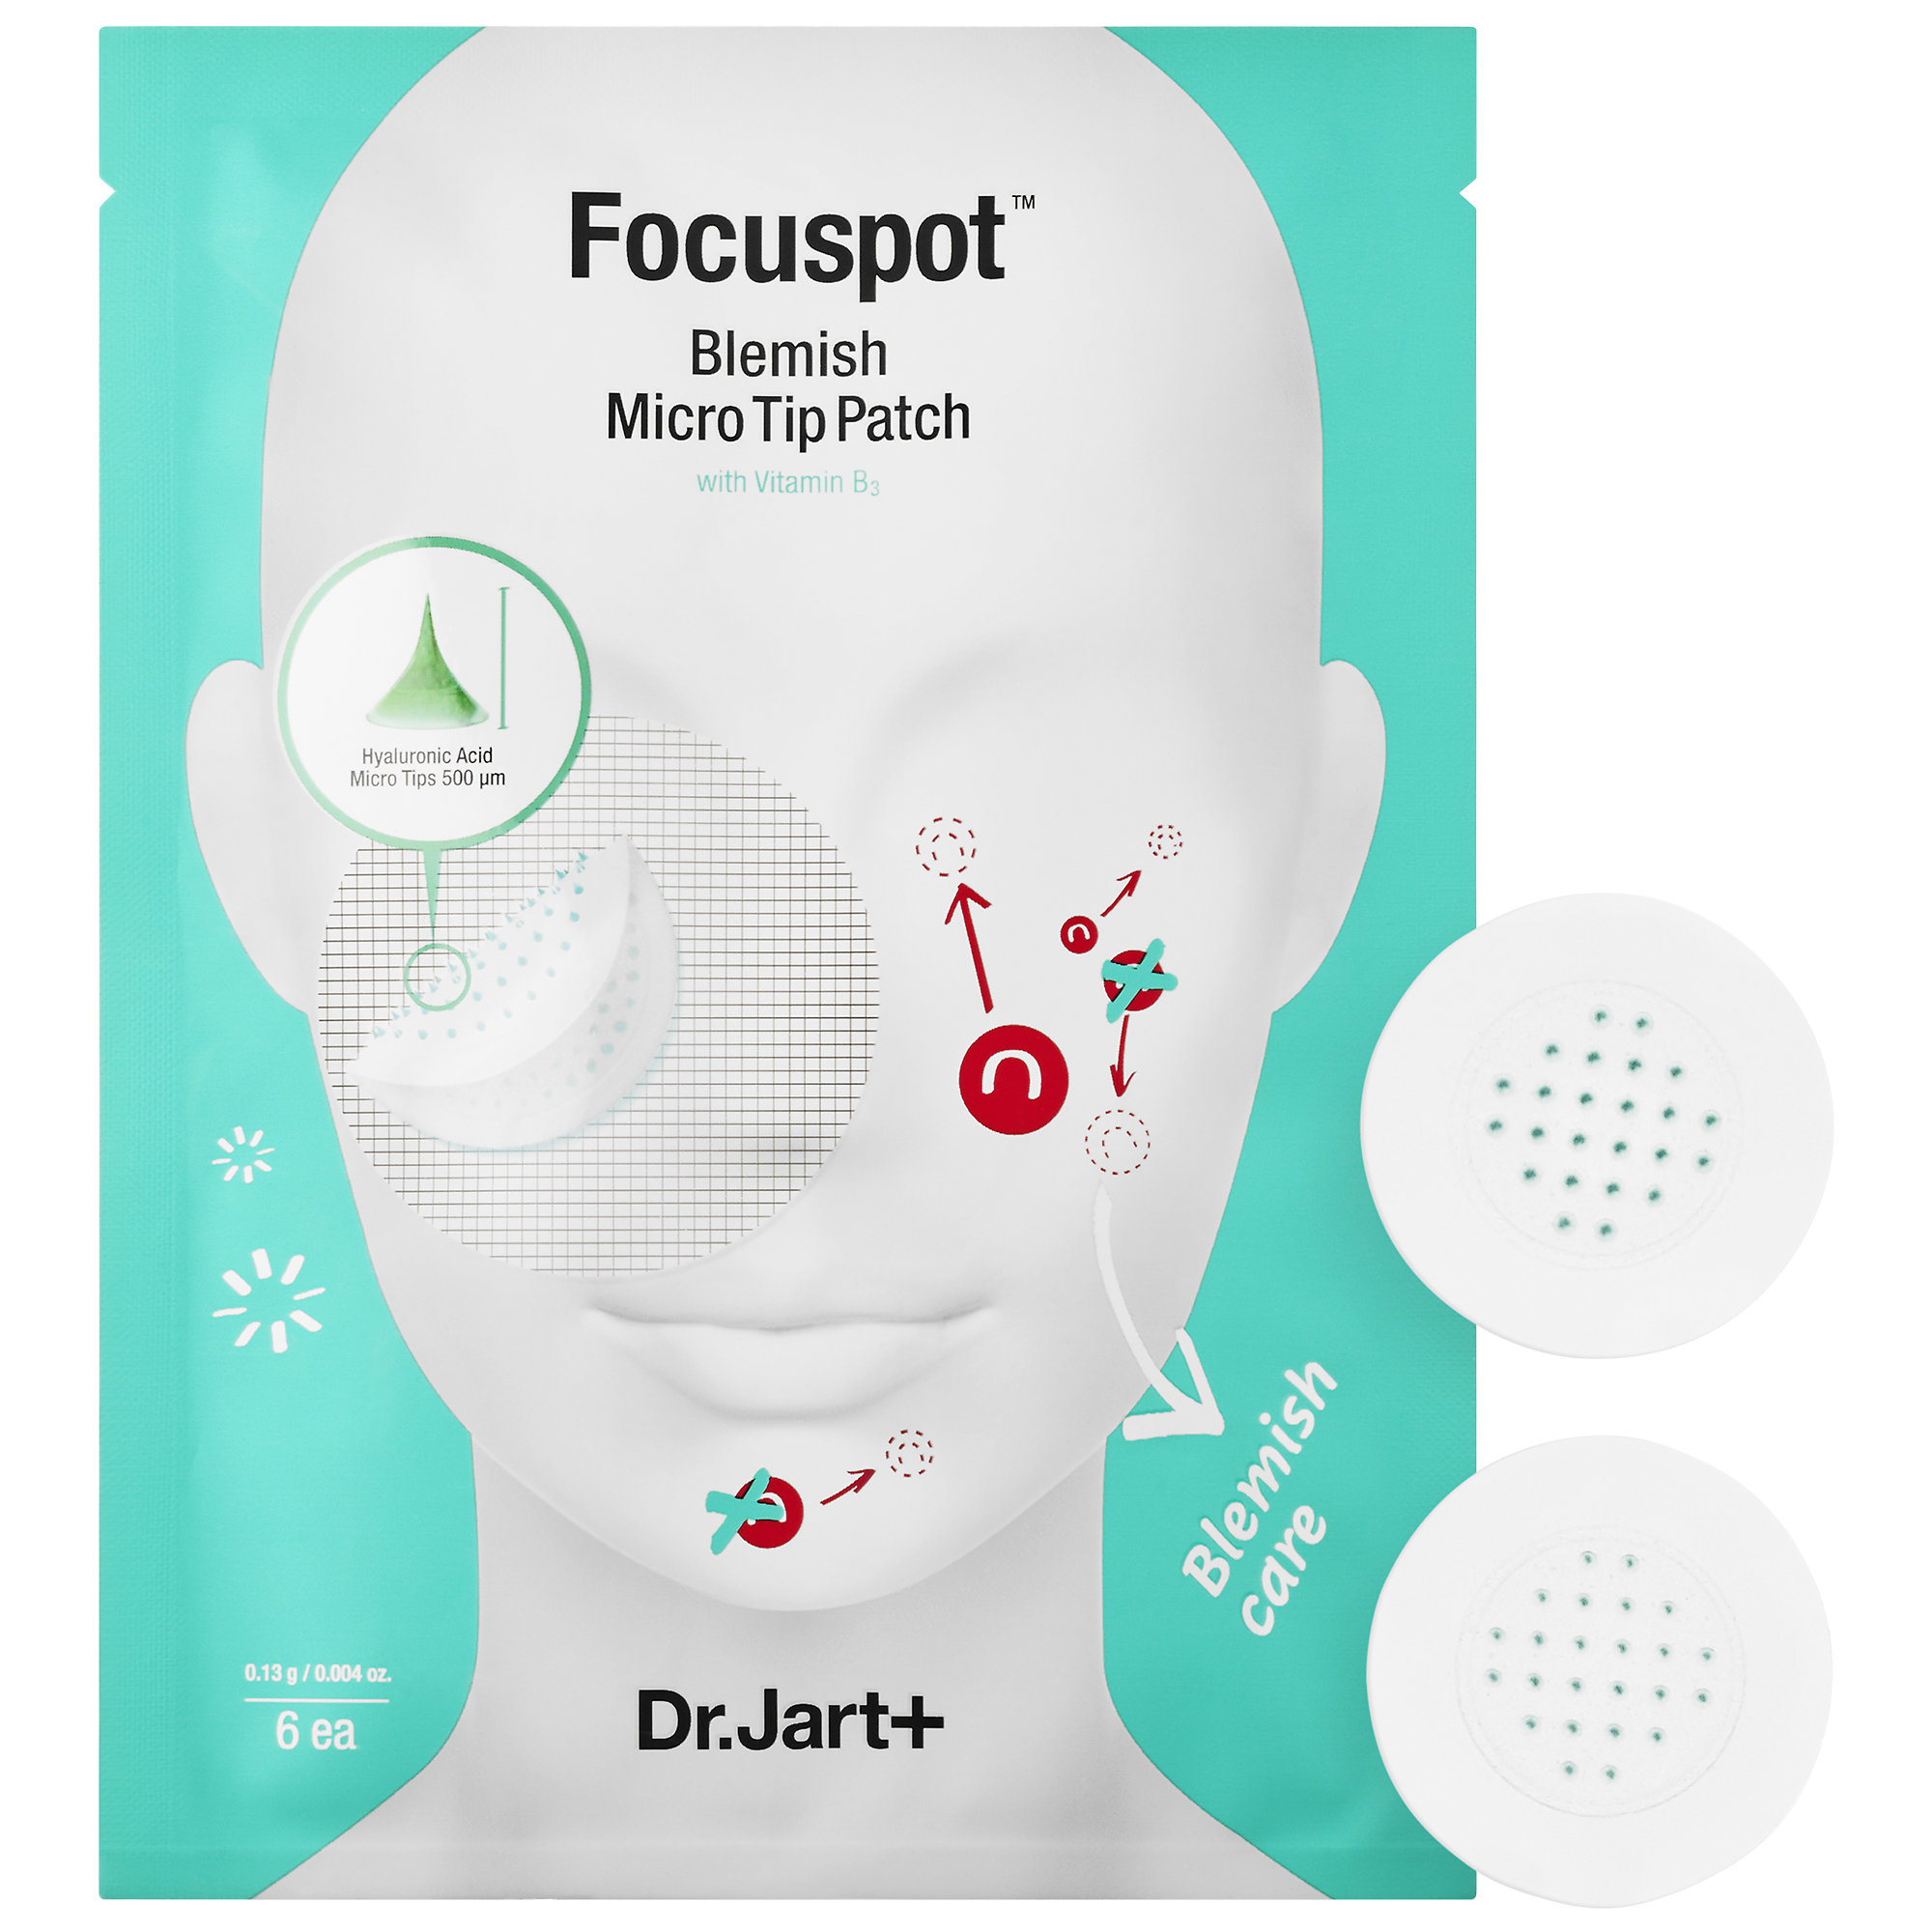 Dr.Jart+ - Focuspot Micro Tip Patches